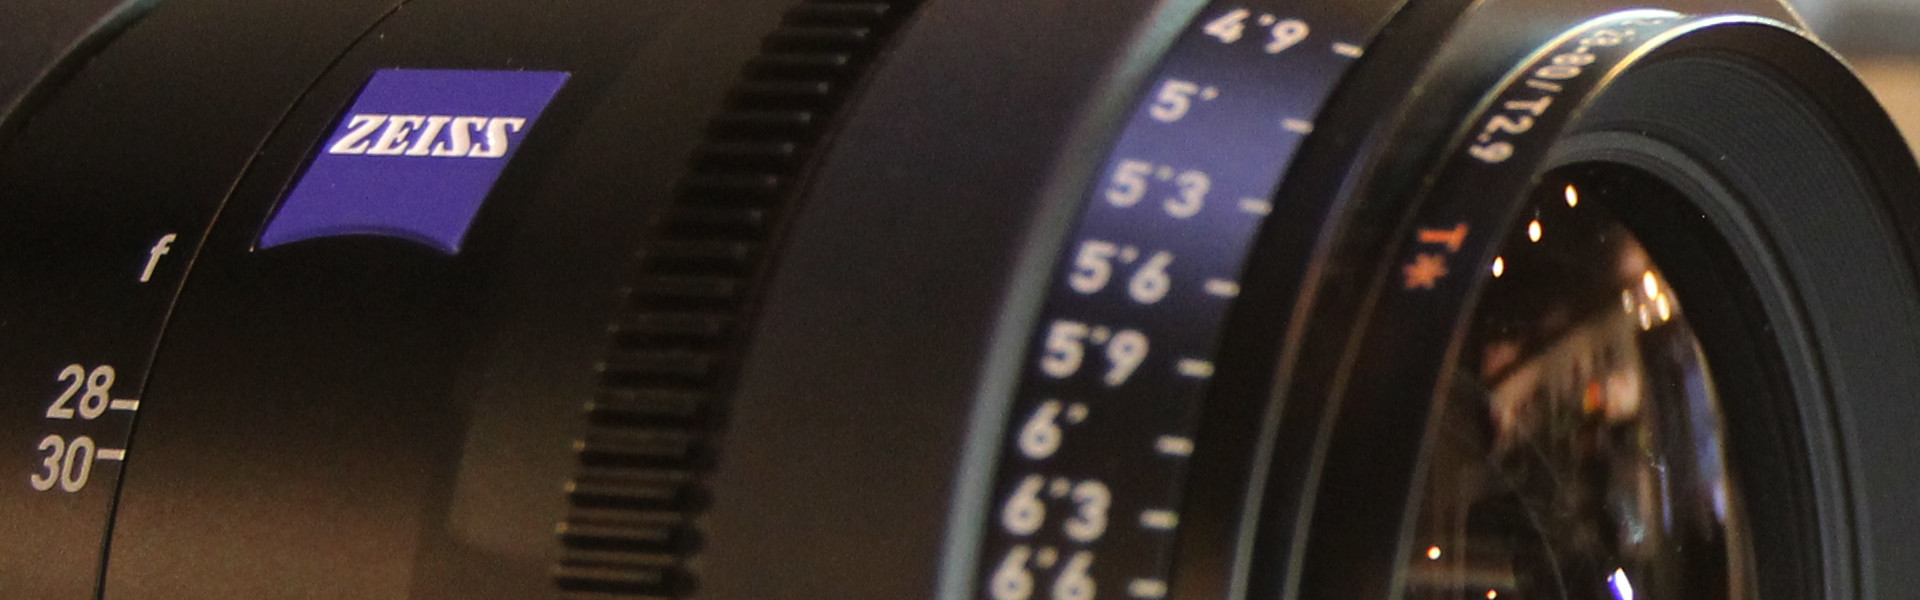 Header image for article Testing the Zeiss CZ.2 Compact Zoom Lenses